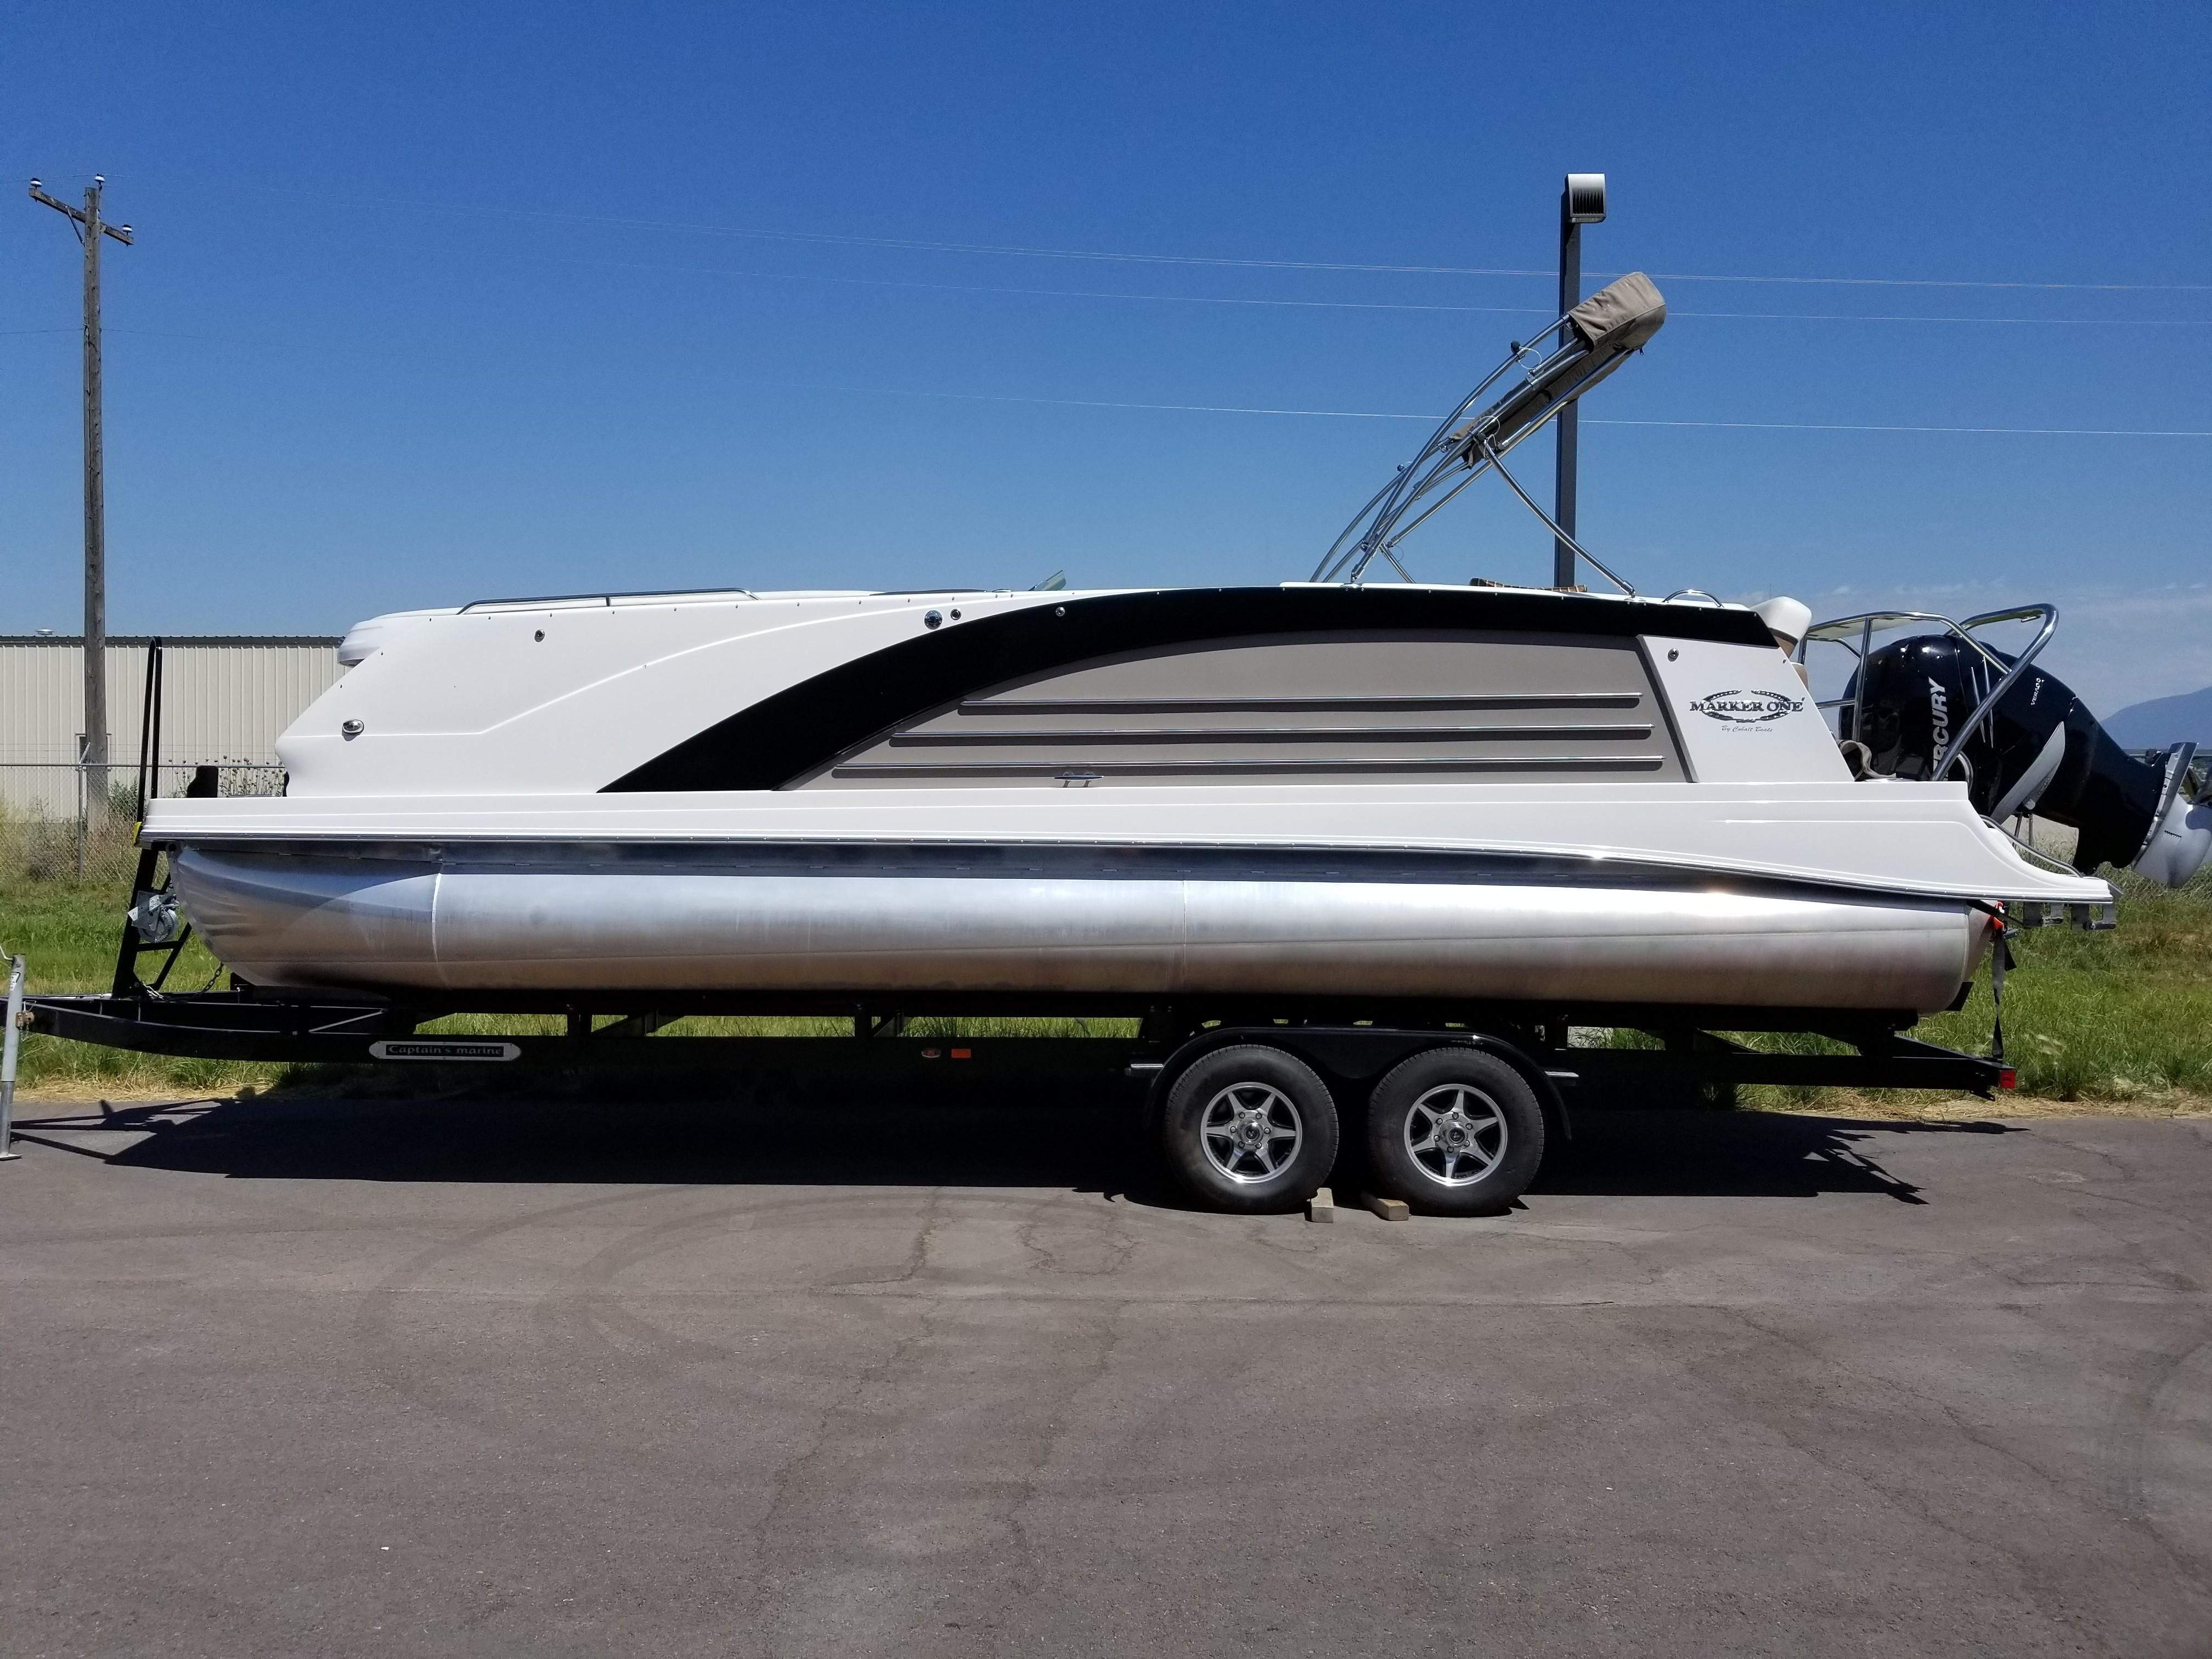 2015 Cobalt Marker One M27 Kalispell Montana Used Boats Boats